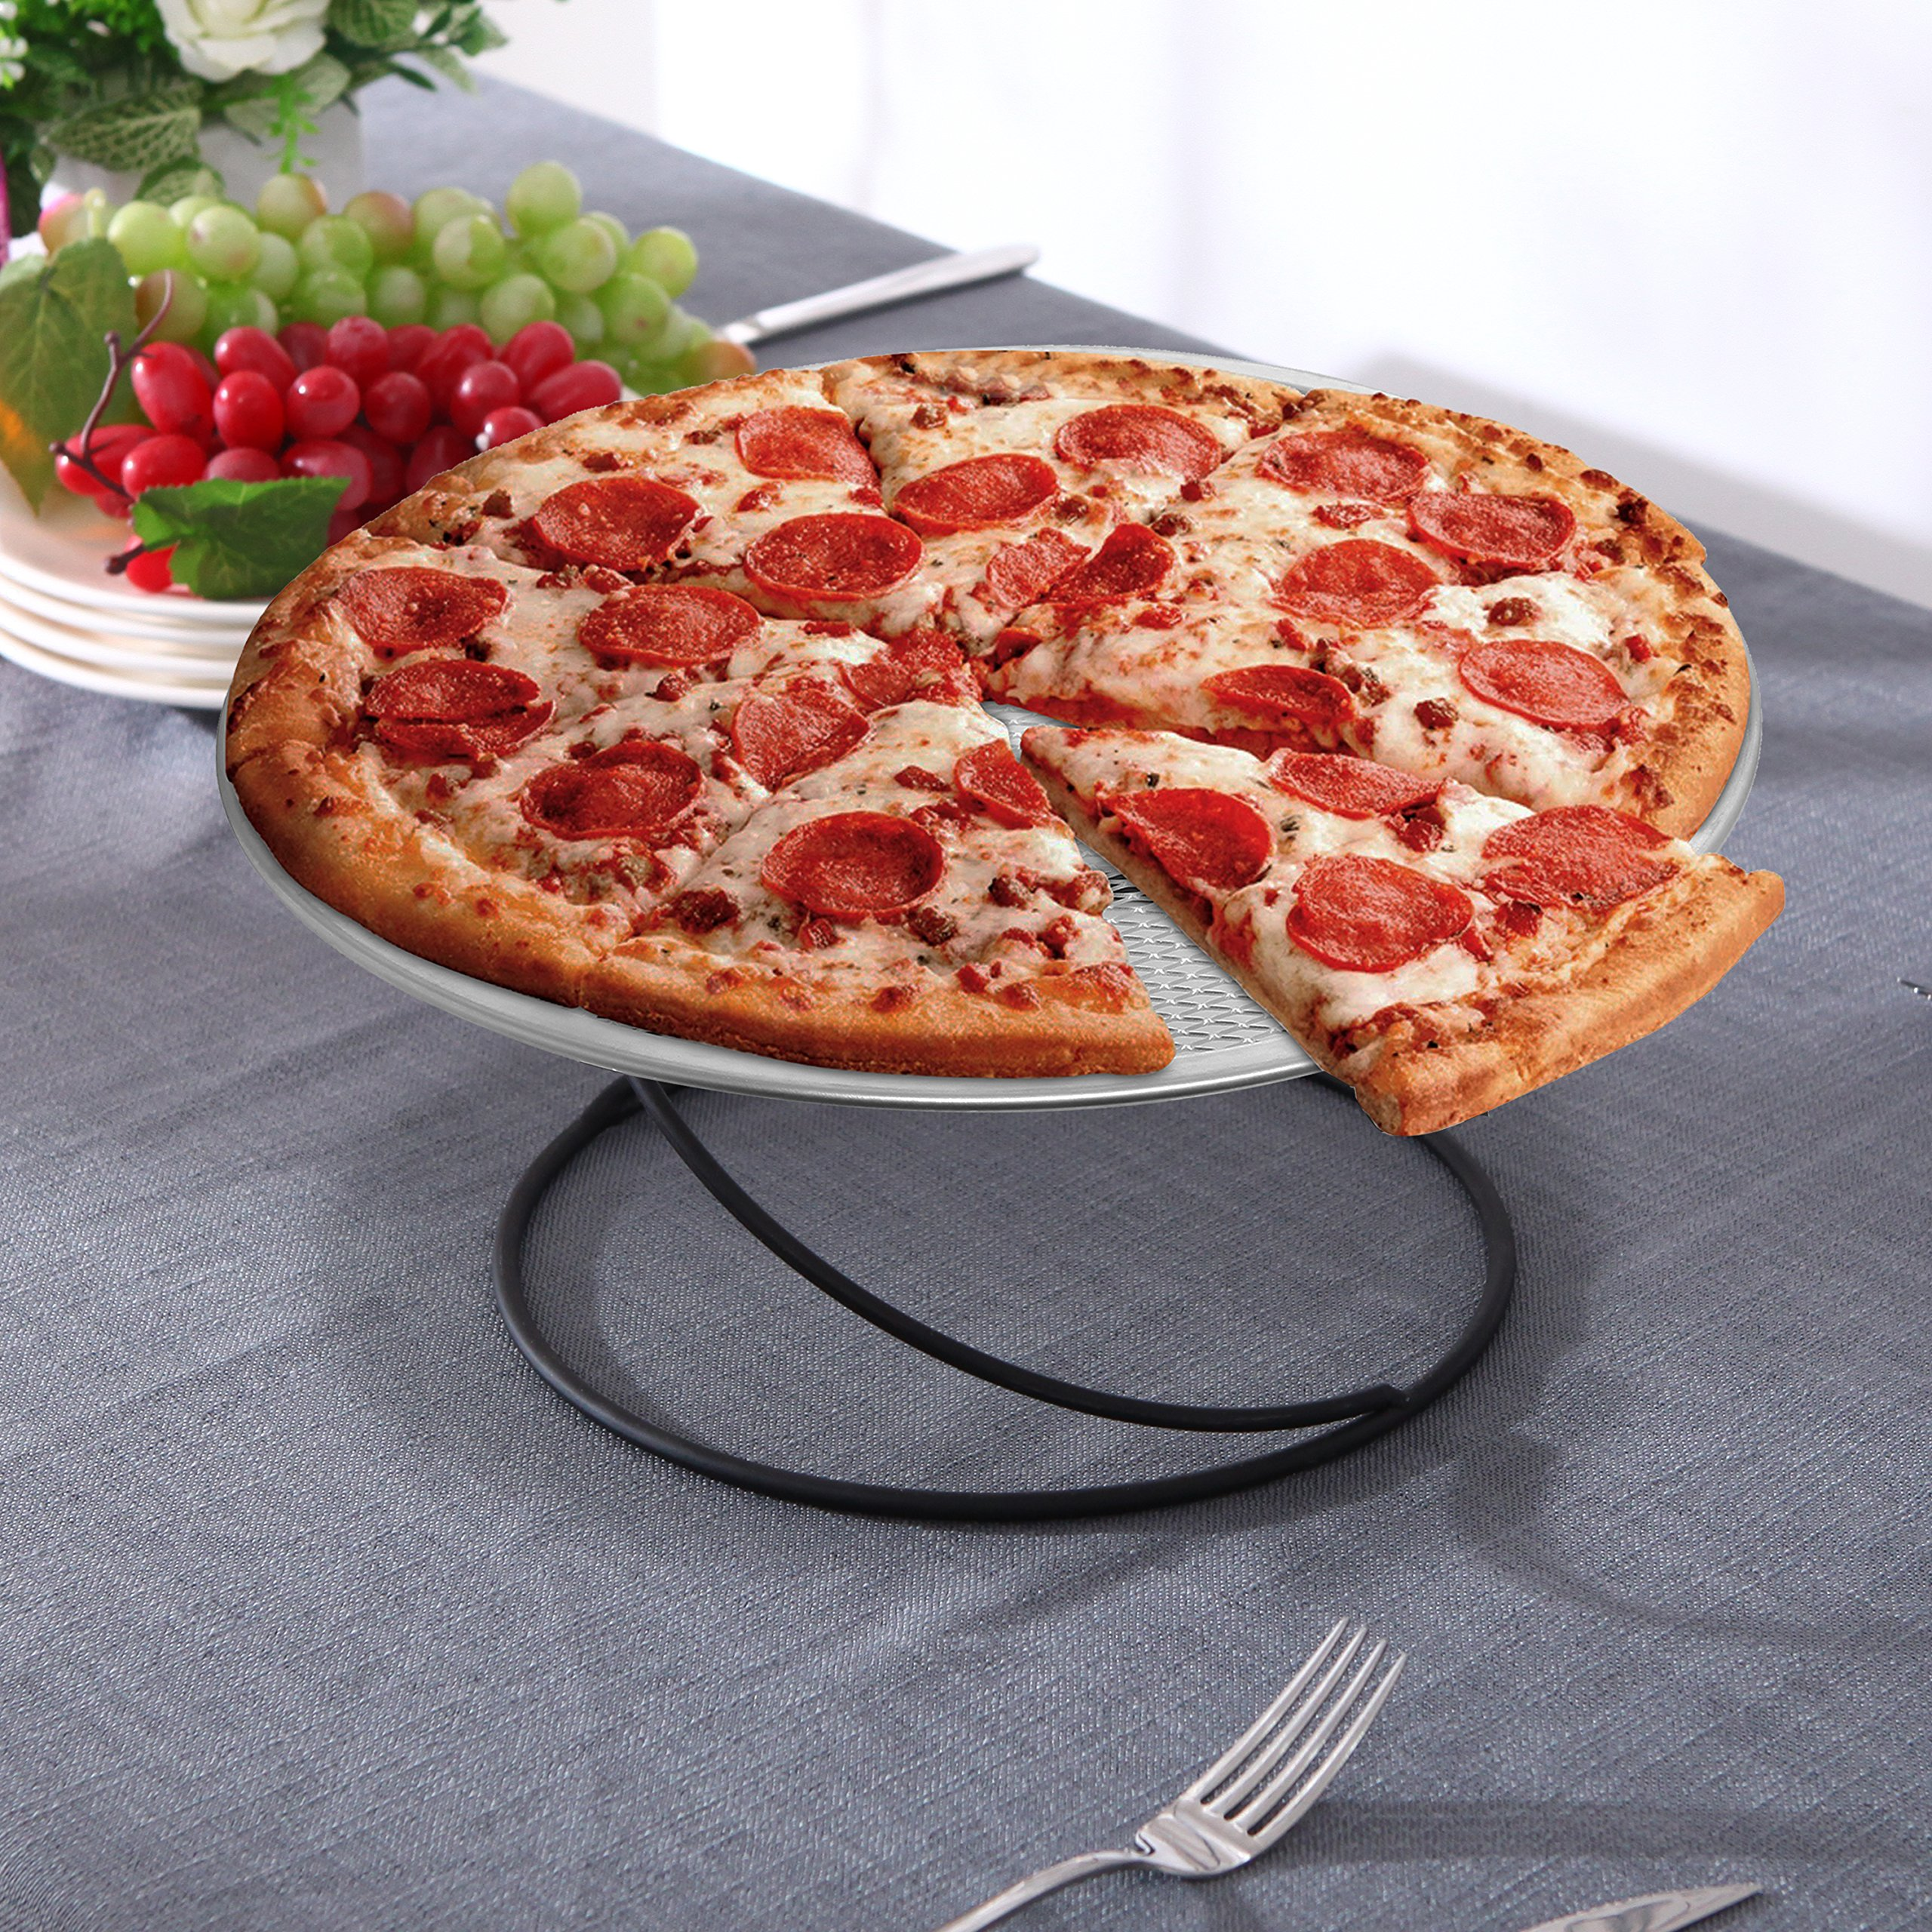 MyGift Set of 4 Metal Spiral Wire Tabletop Pizza Tray Stands, Black by MyGift (Image #2)